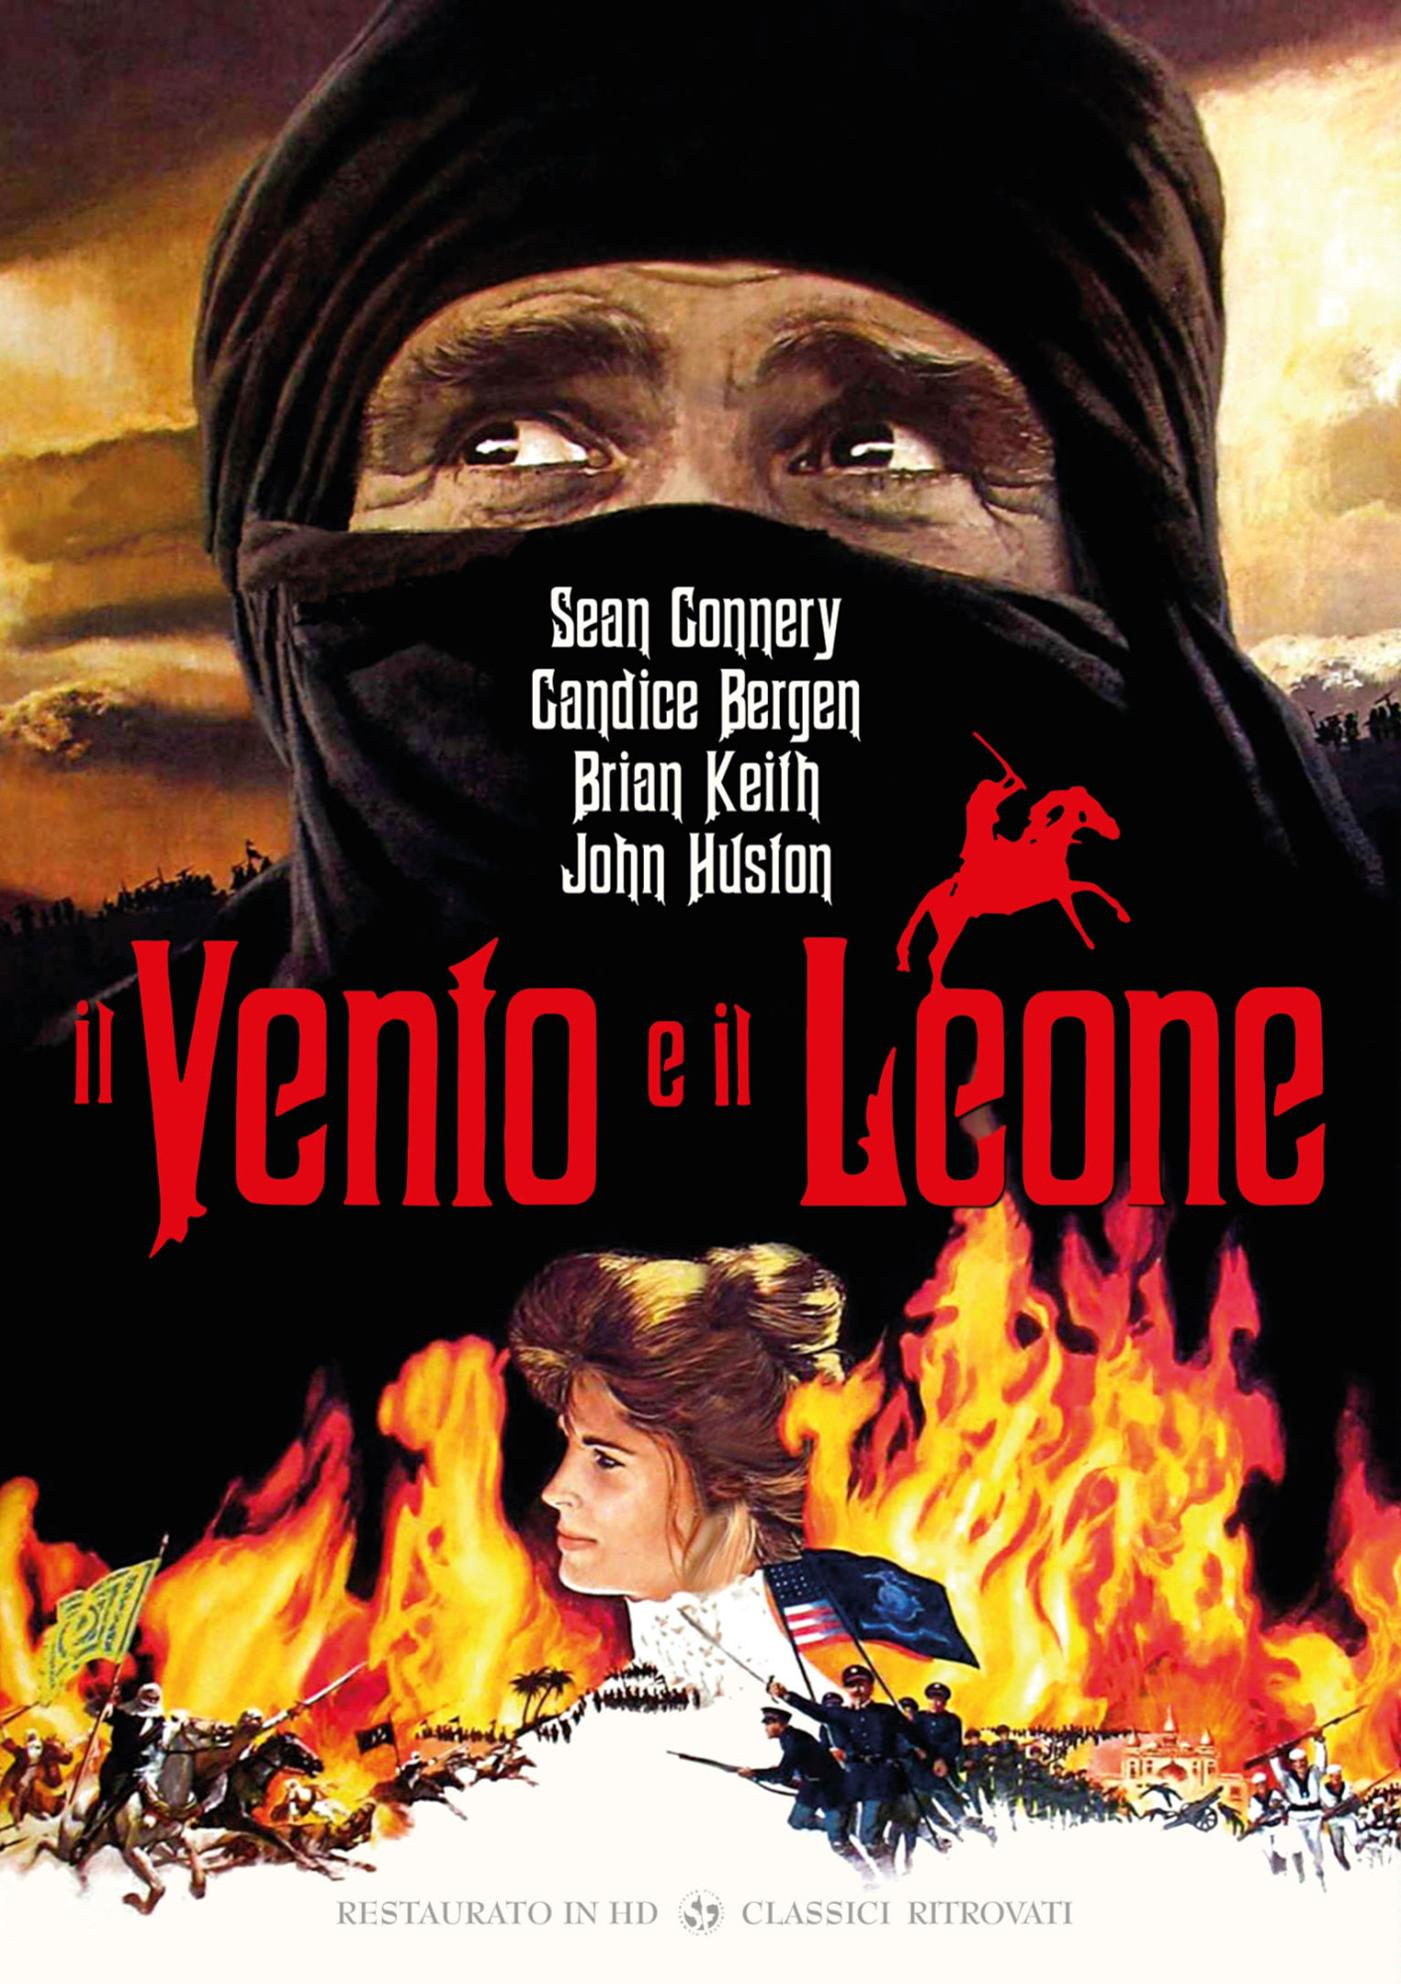 IL VENTO E IL LEONE (RESTAURATO IN HD) (DVD)